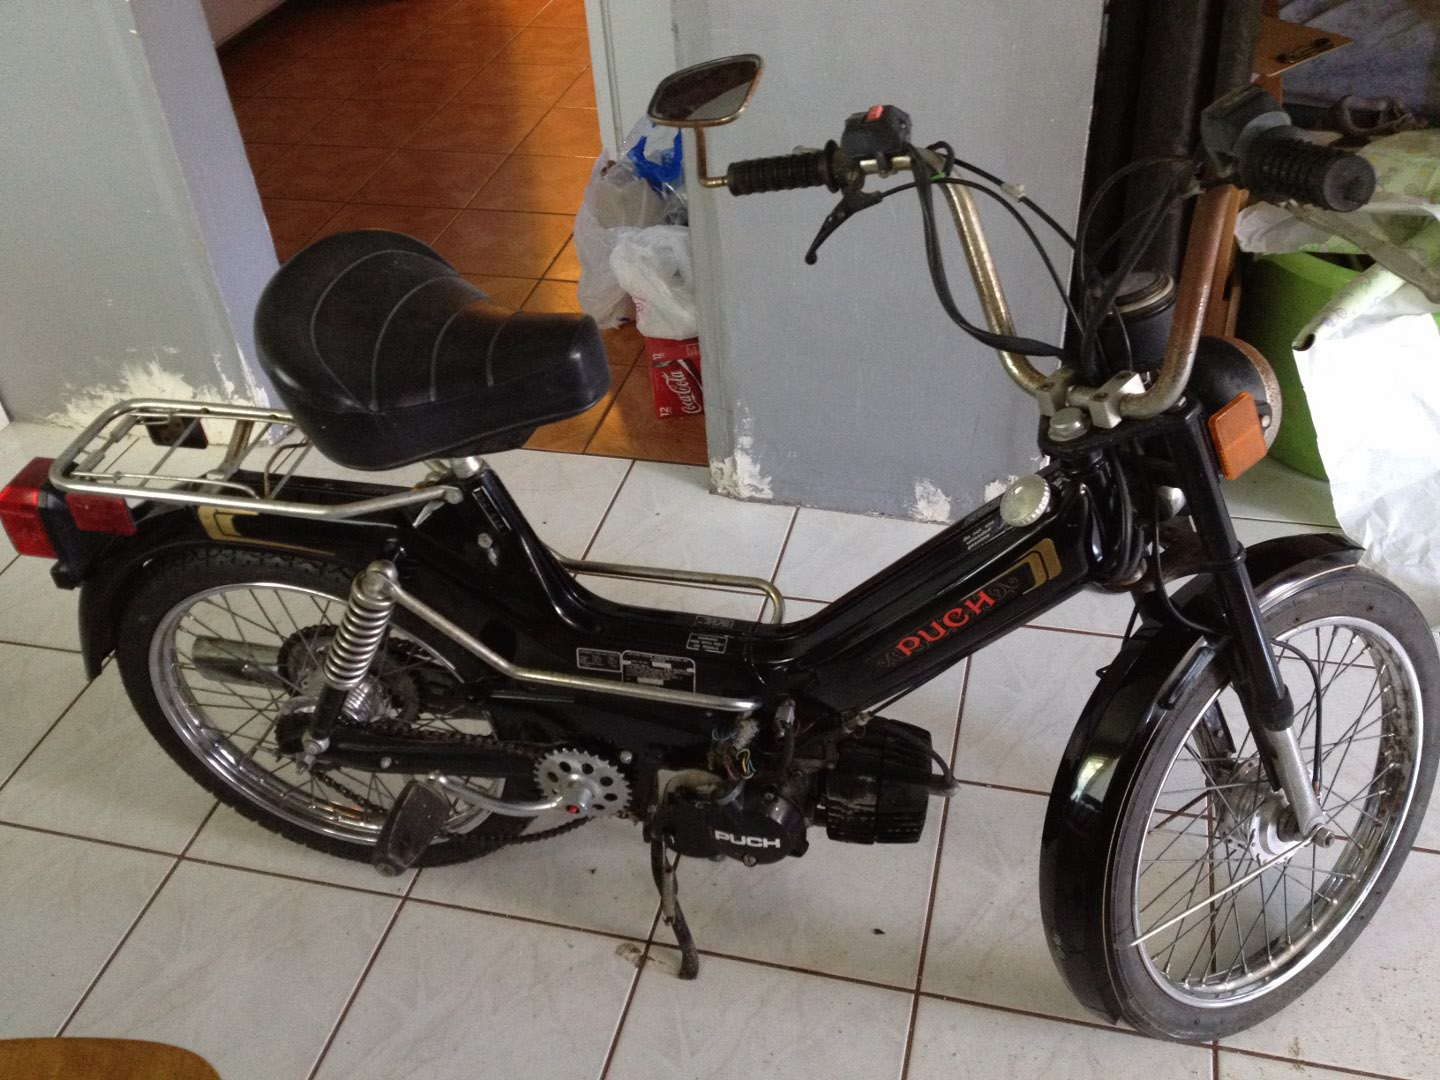 Looking for my old moped: 1976 Puch Newport blk/gold — Moped